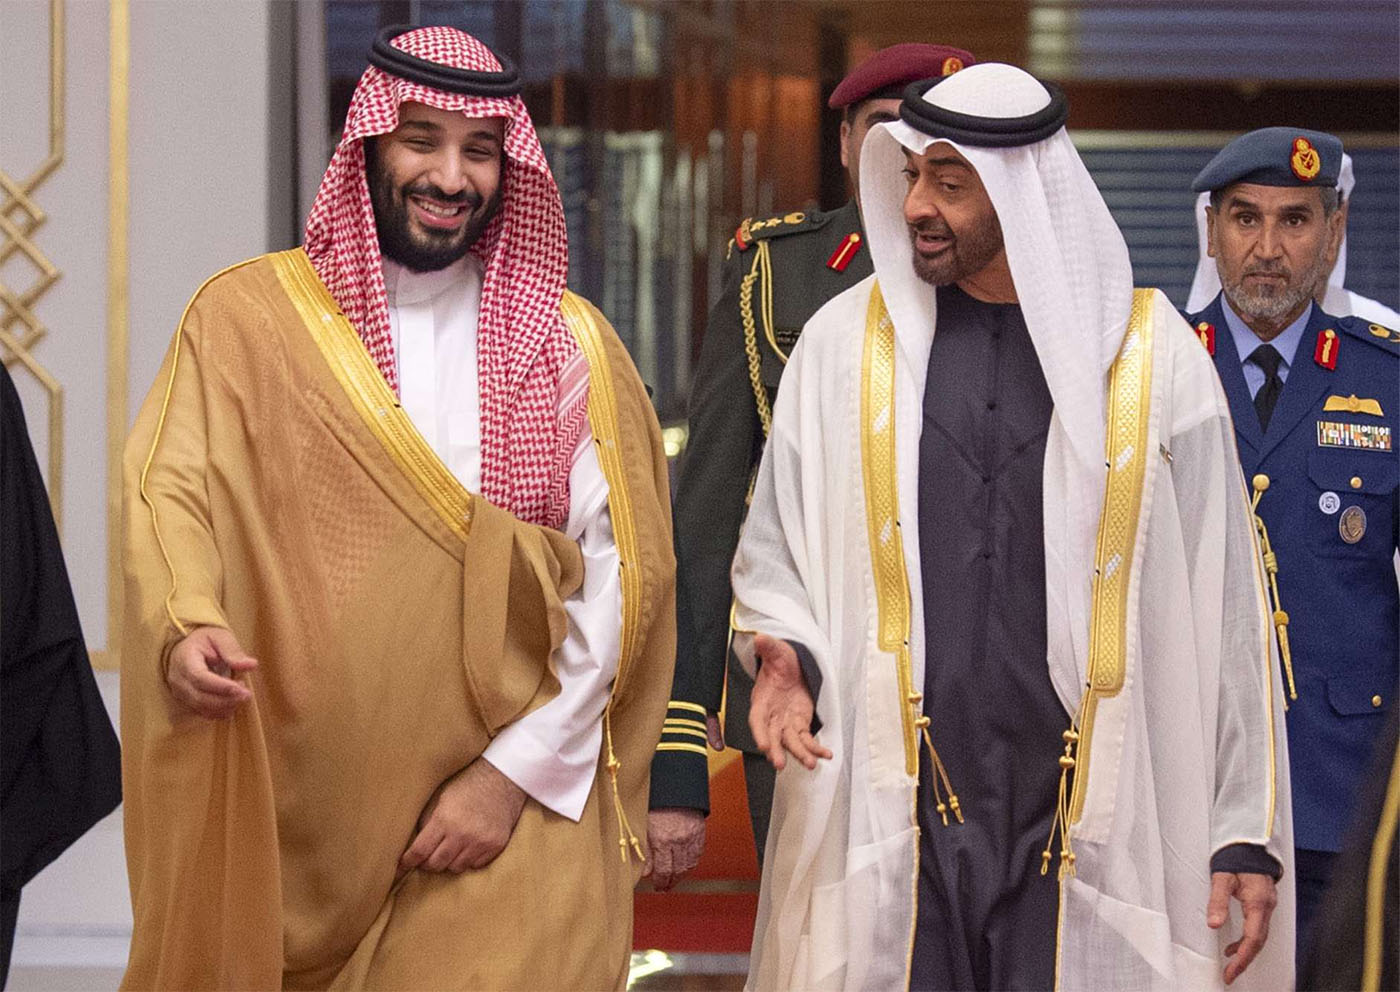 Saudi Crown Prince Mohammed bin Salman (L) received by Abu Dhabi's Crown Prince Sheikh Mohamed bin Zayed Al Nahyan